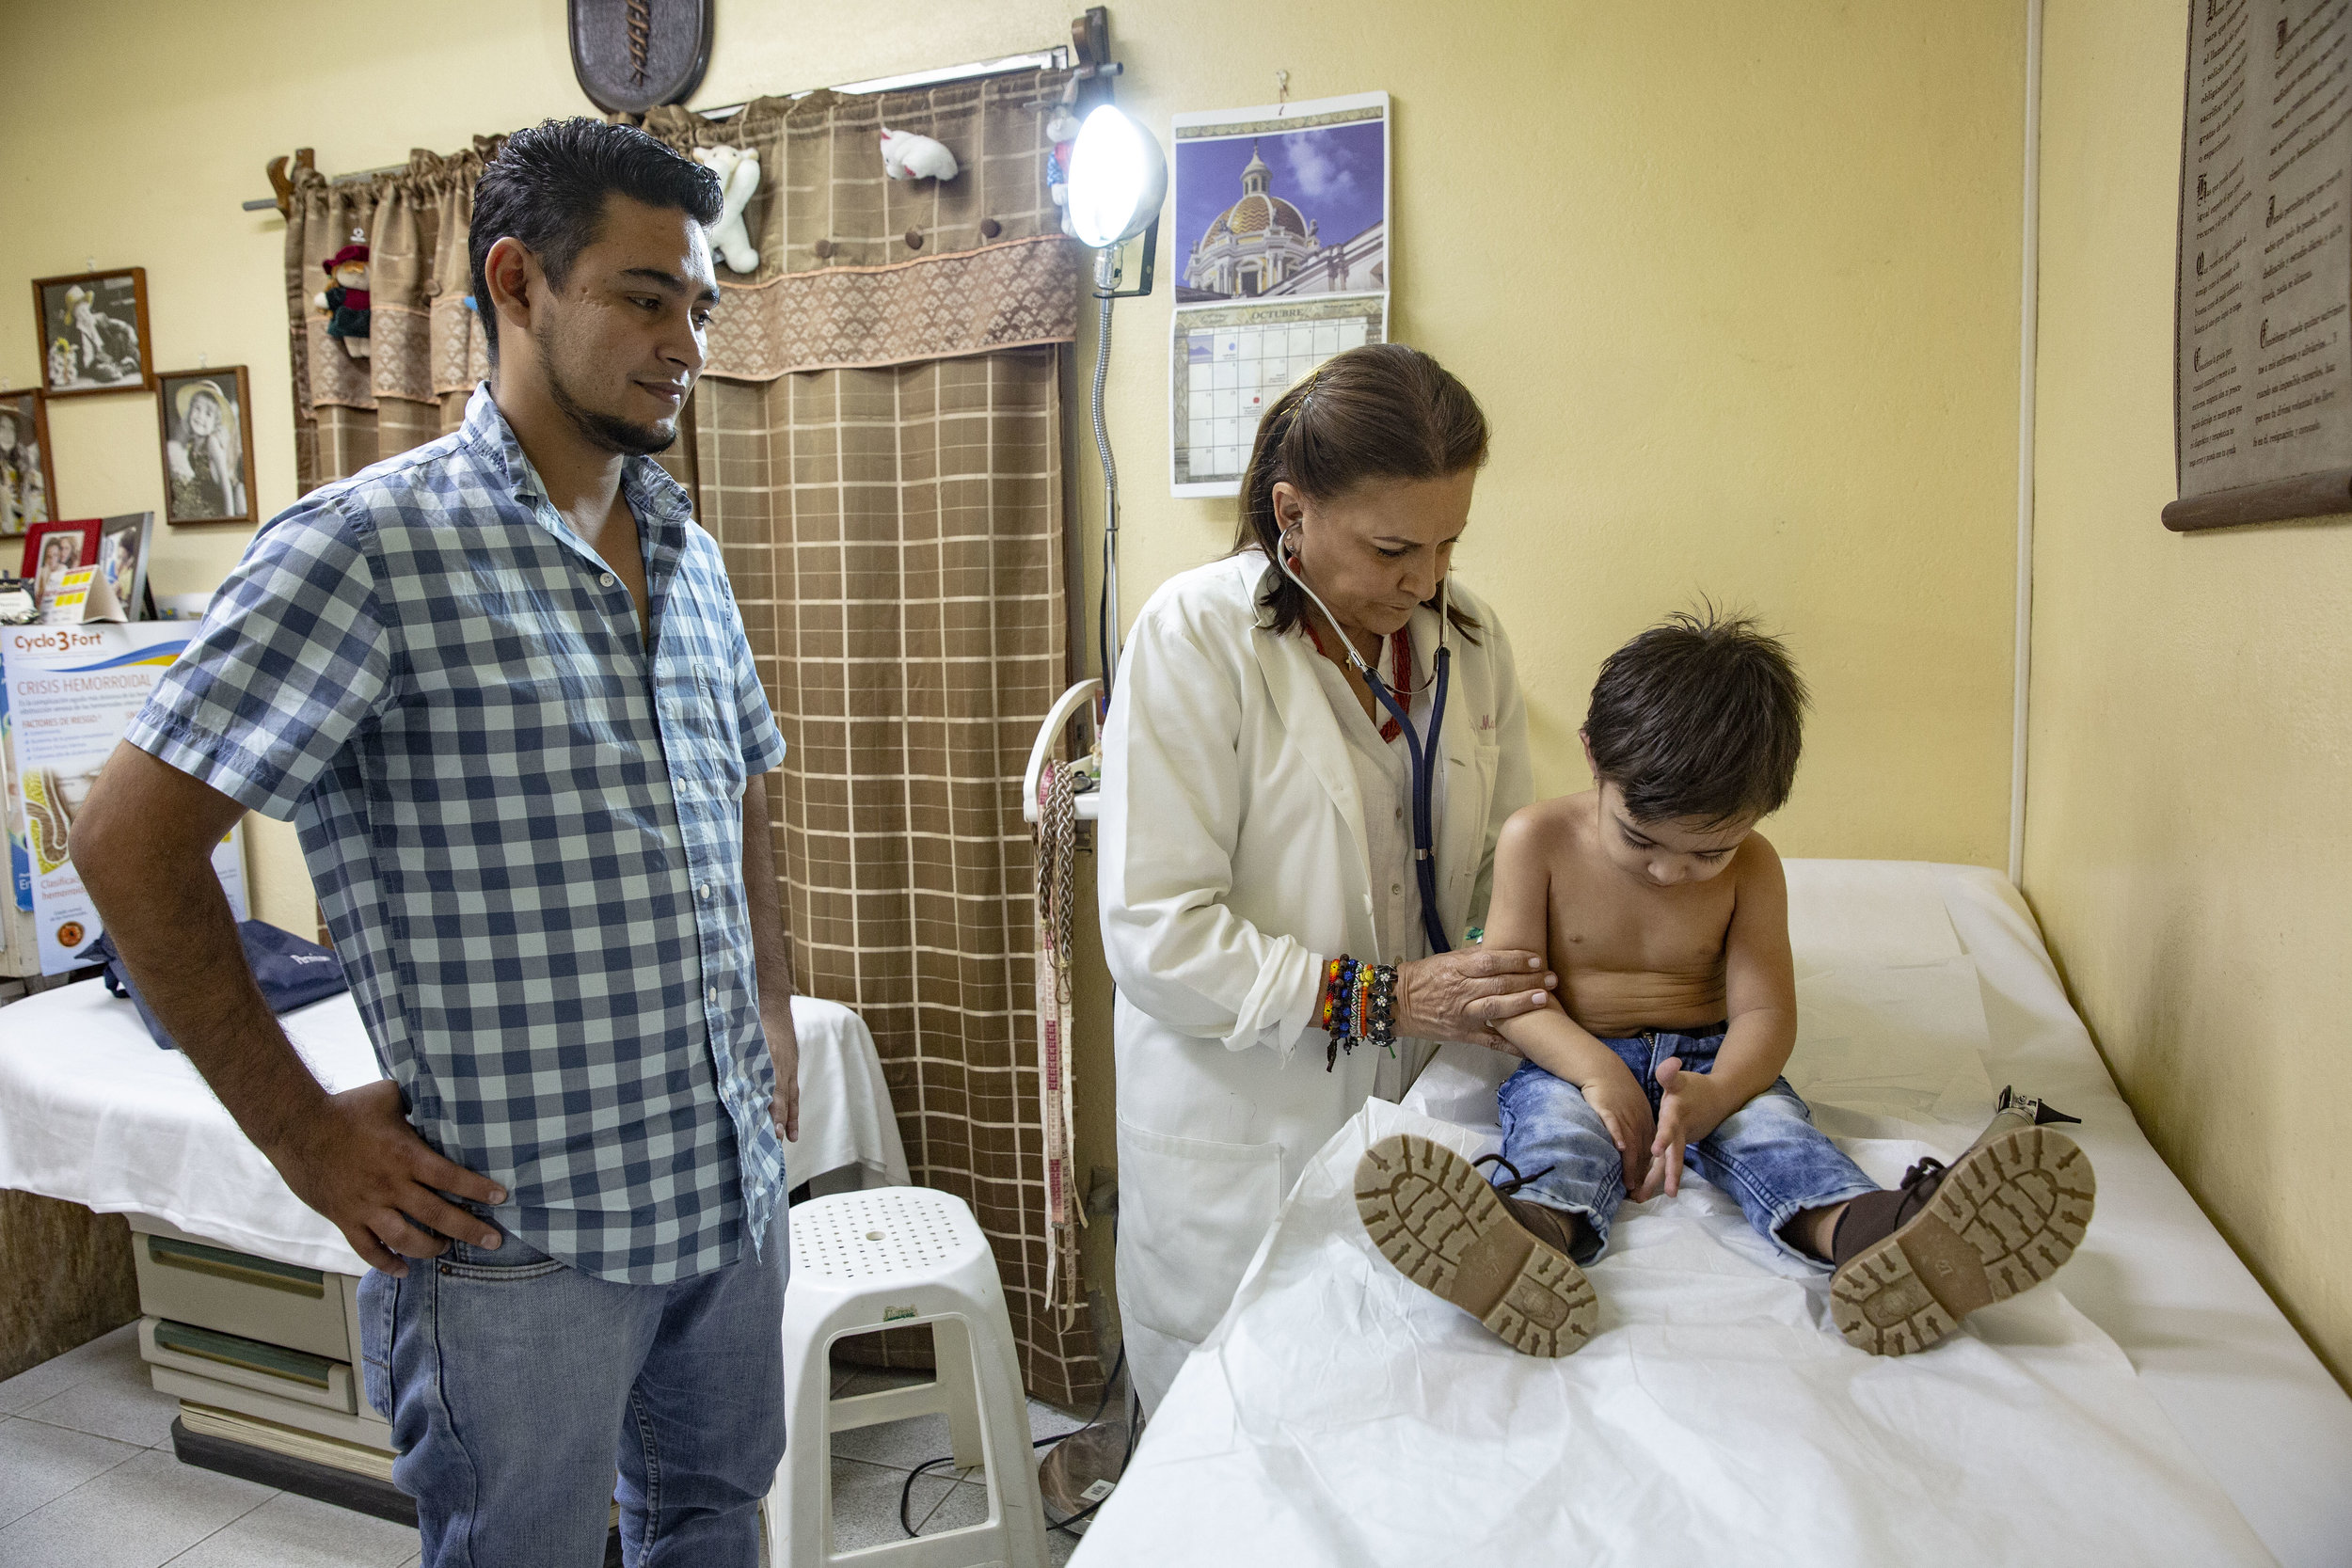 Doctor Madrid visit a child while his father attends, at the ruth Paz clinic in San Pedro Sula, where various services are provided:various services: general medicine, dentistry, and orthodontics.